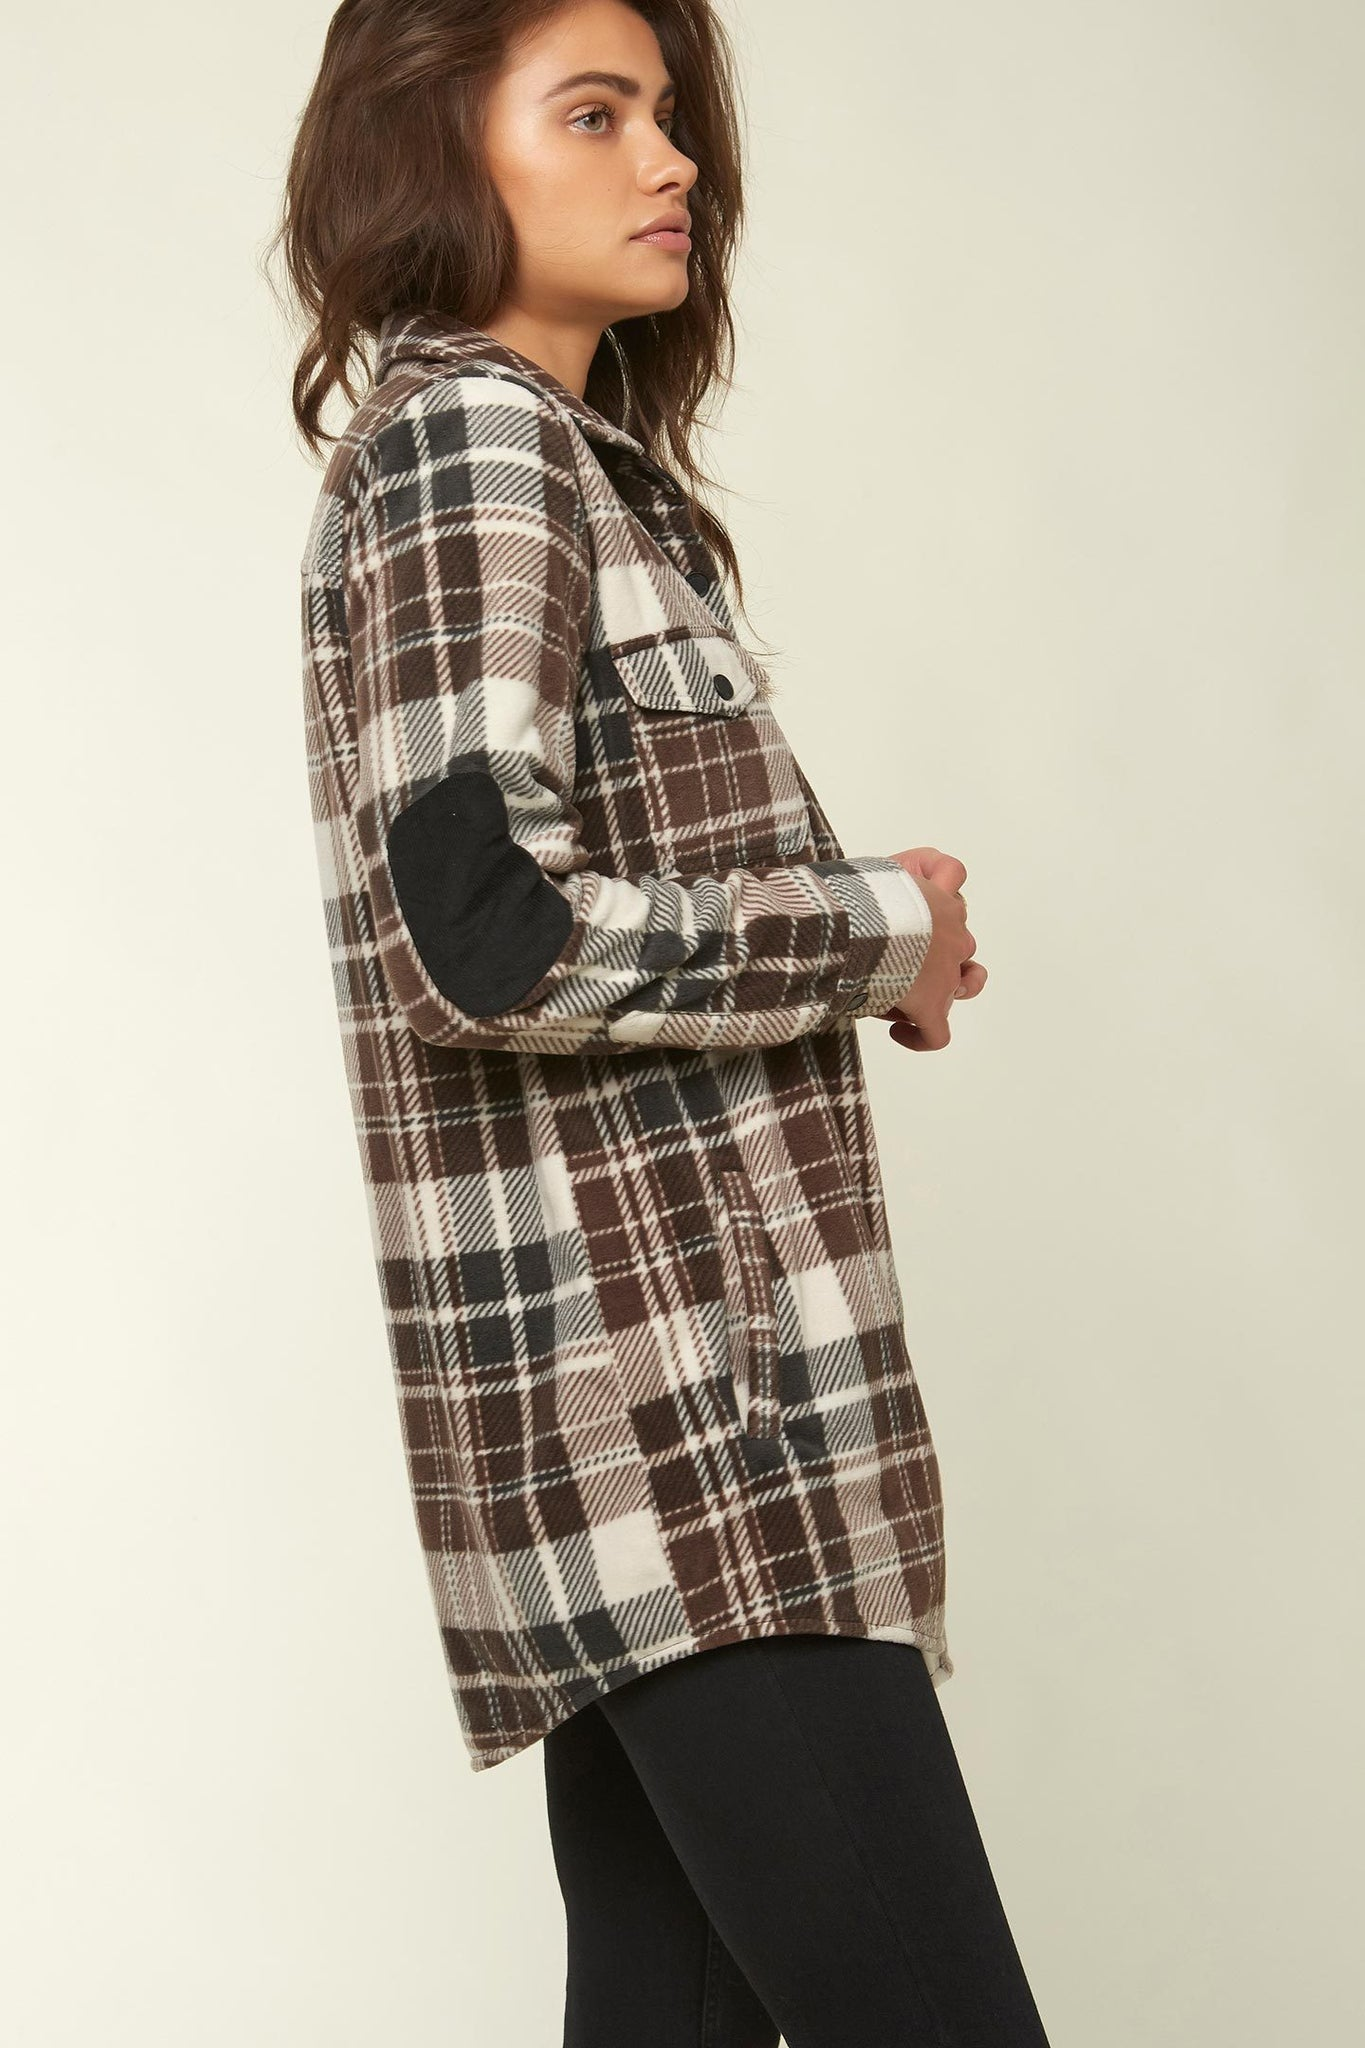 Coldcoast Superfleece Flannel Top - Multi Colored | O'Neill